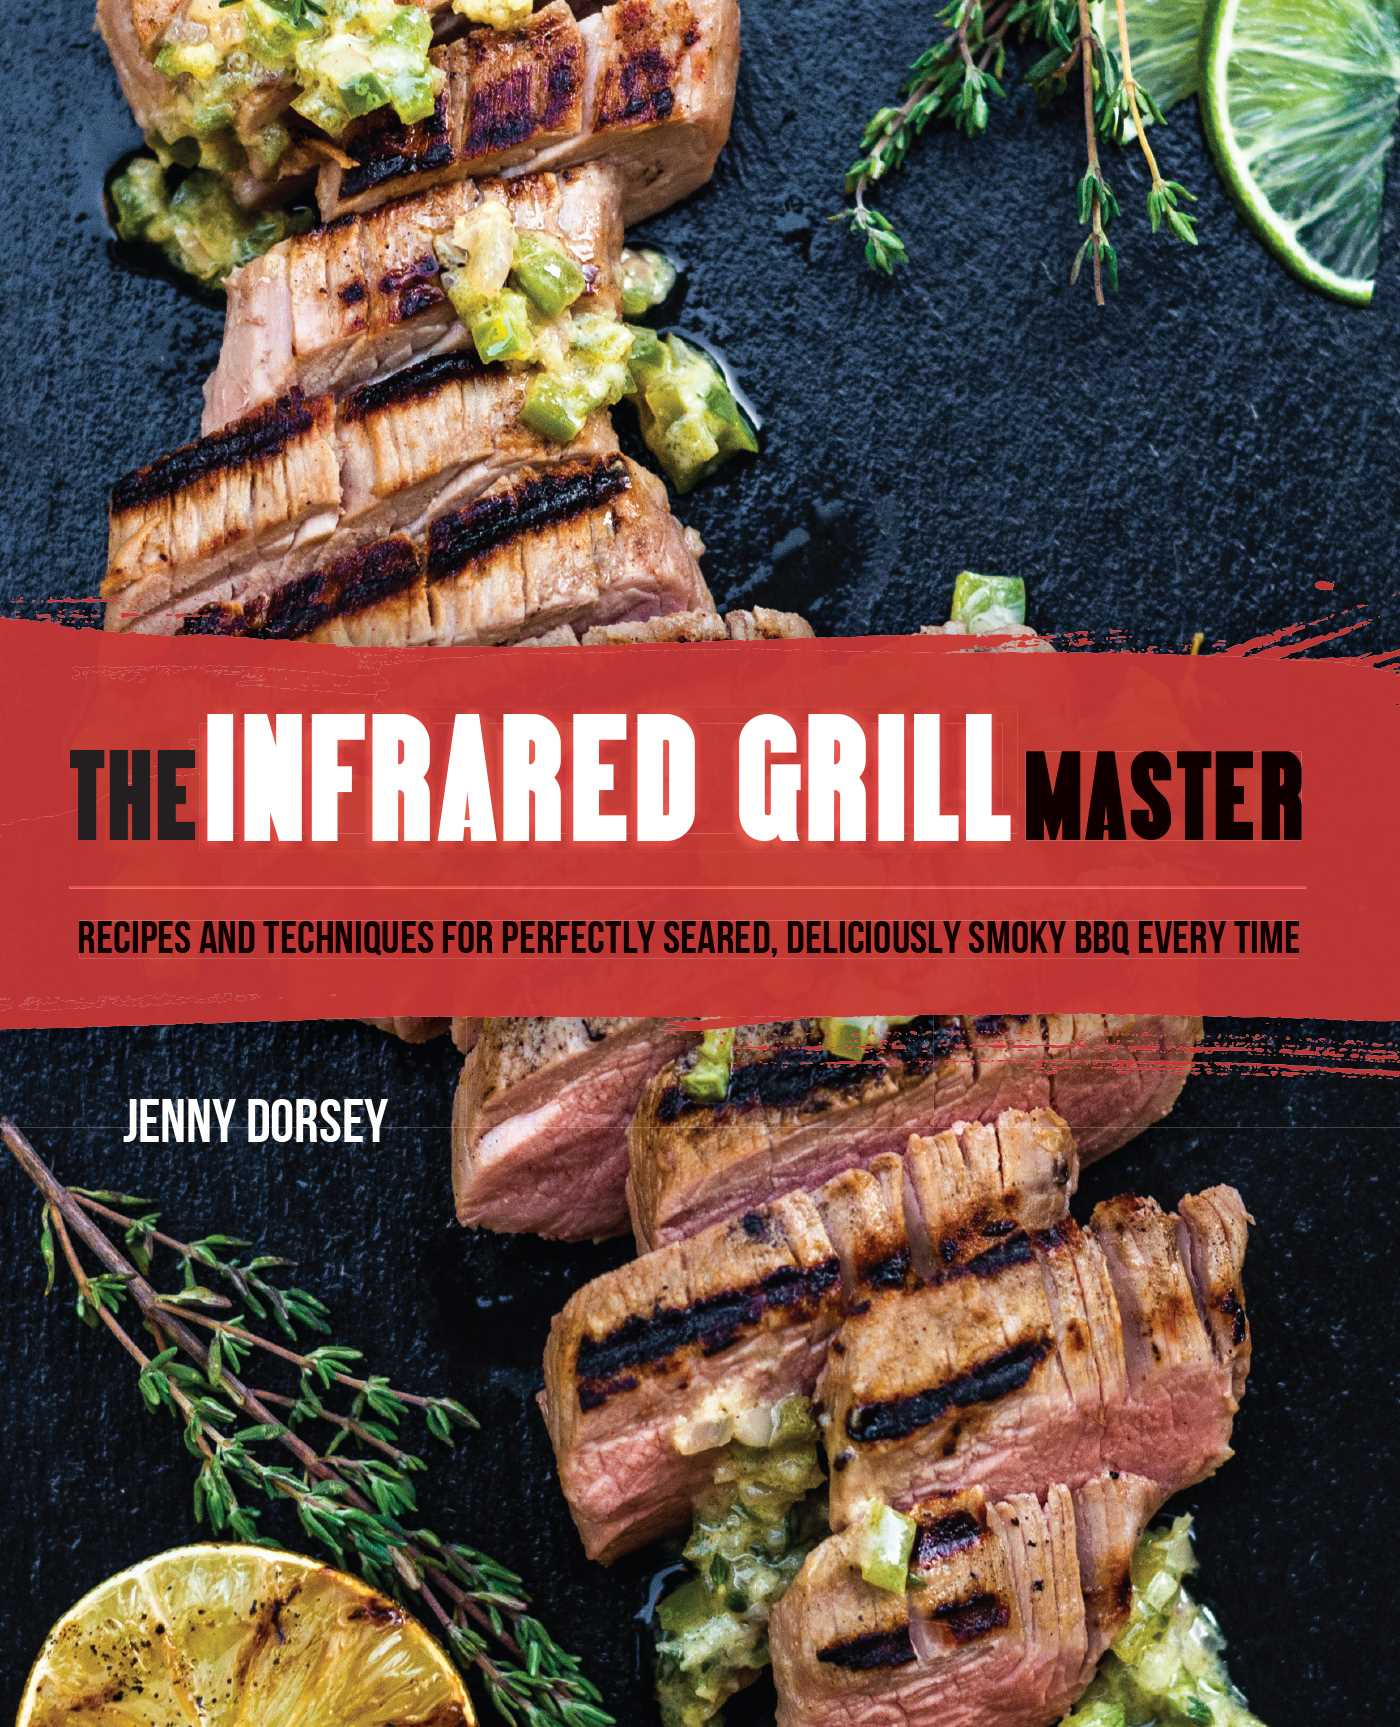 The Infrared Grill Master